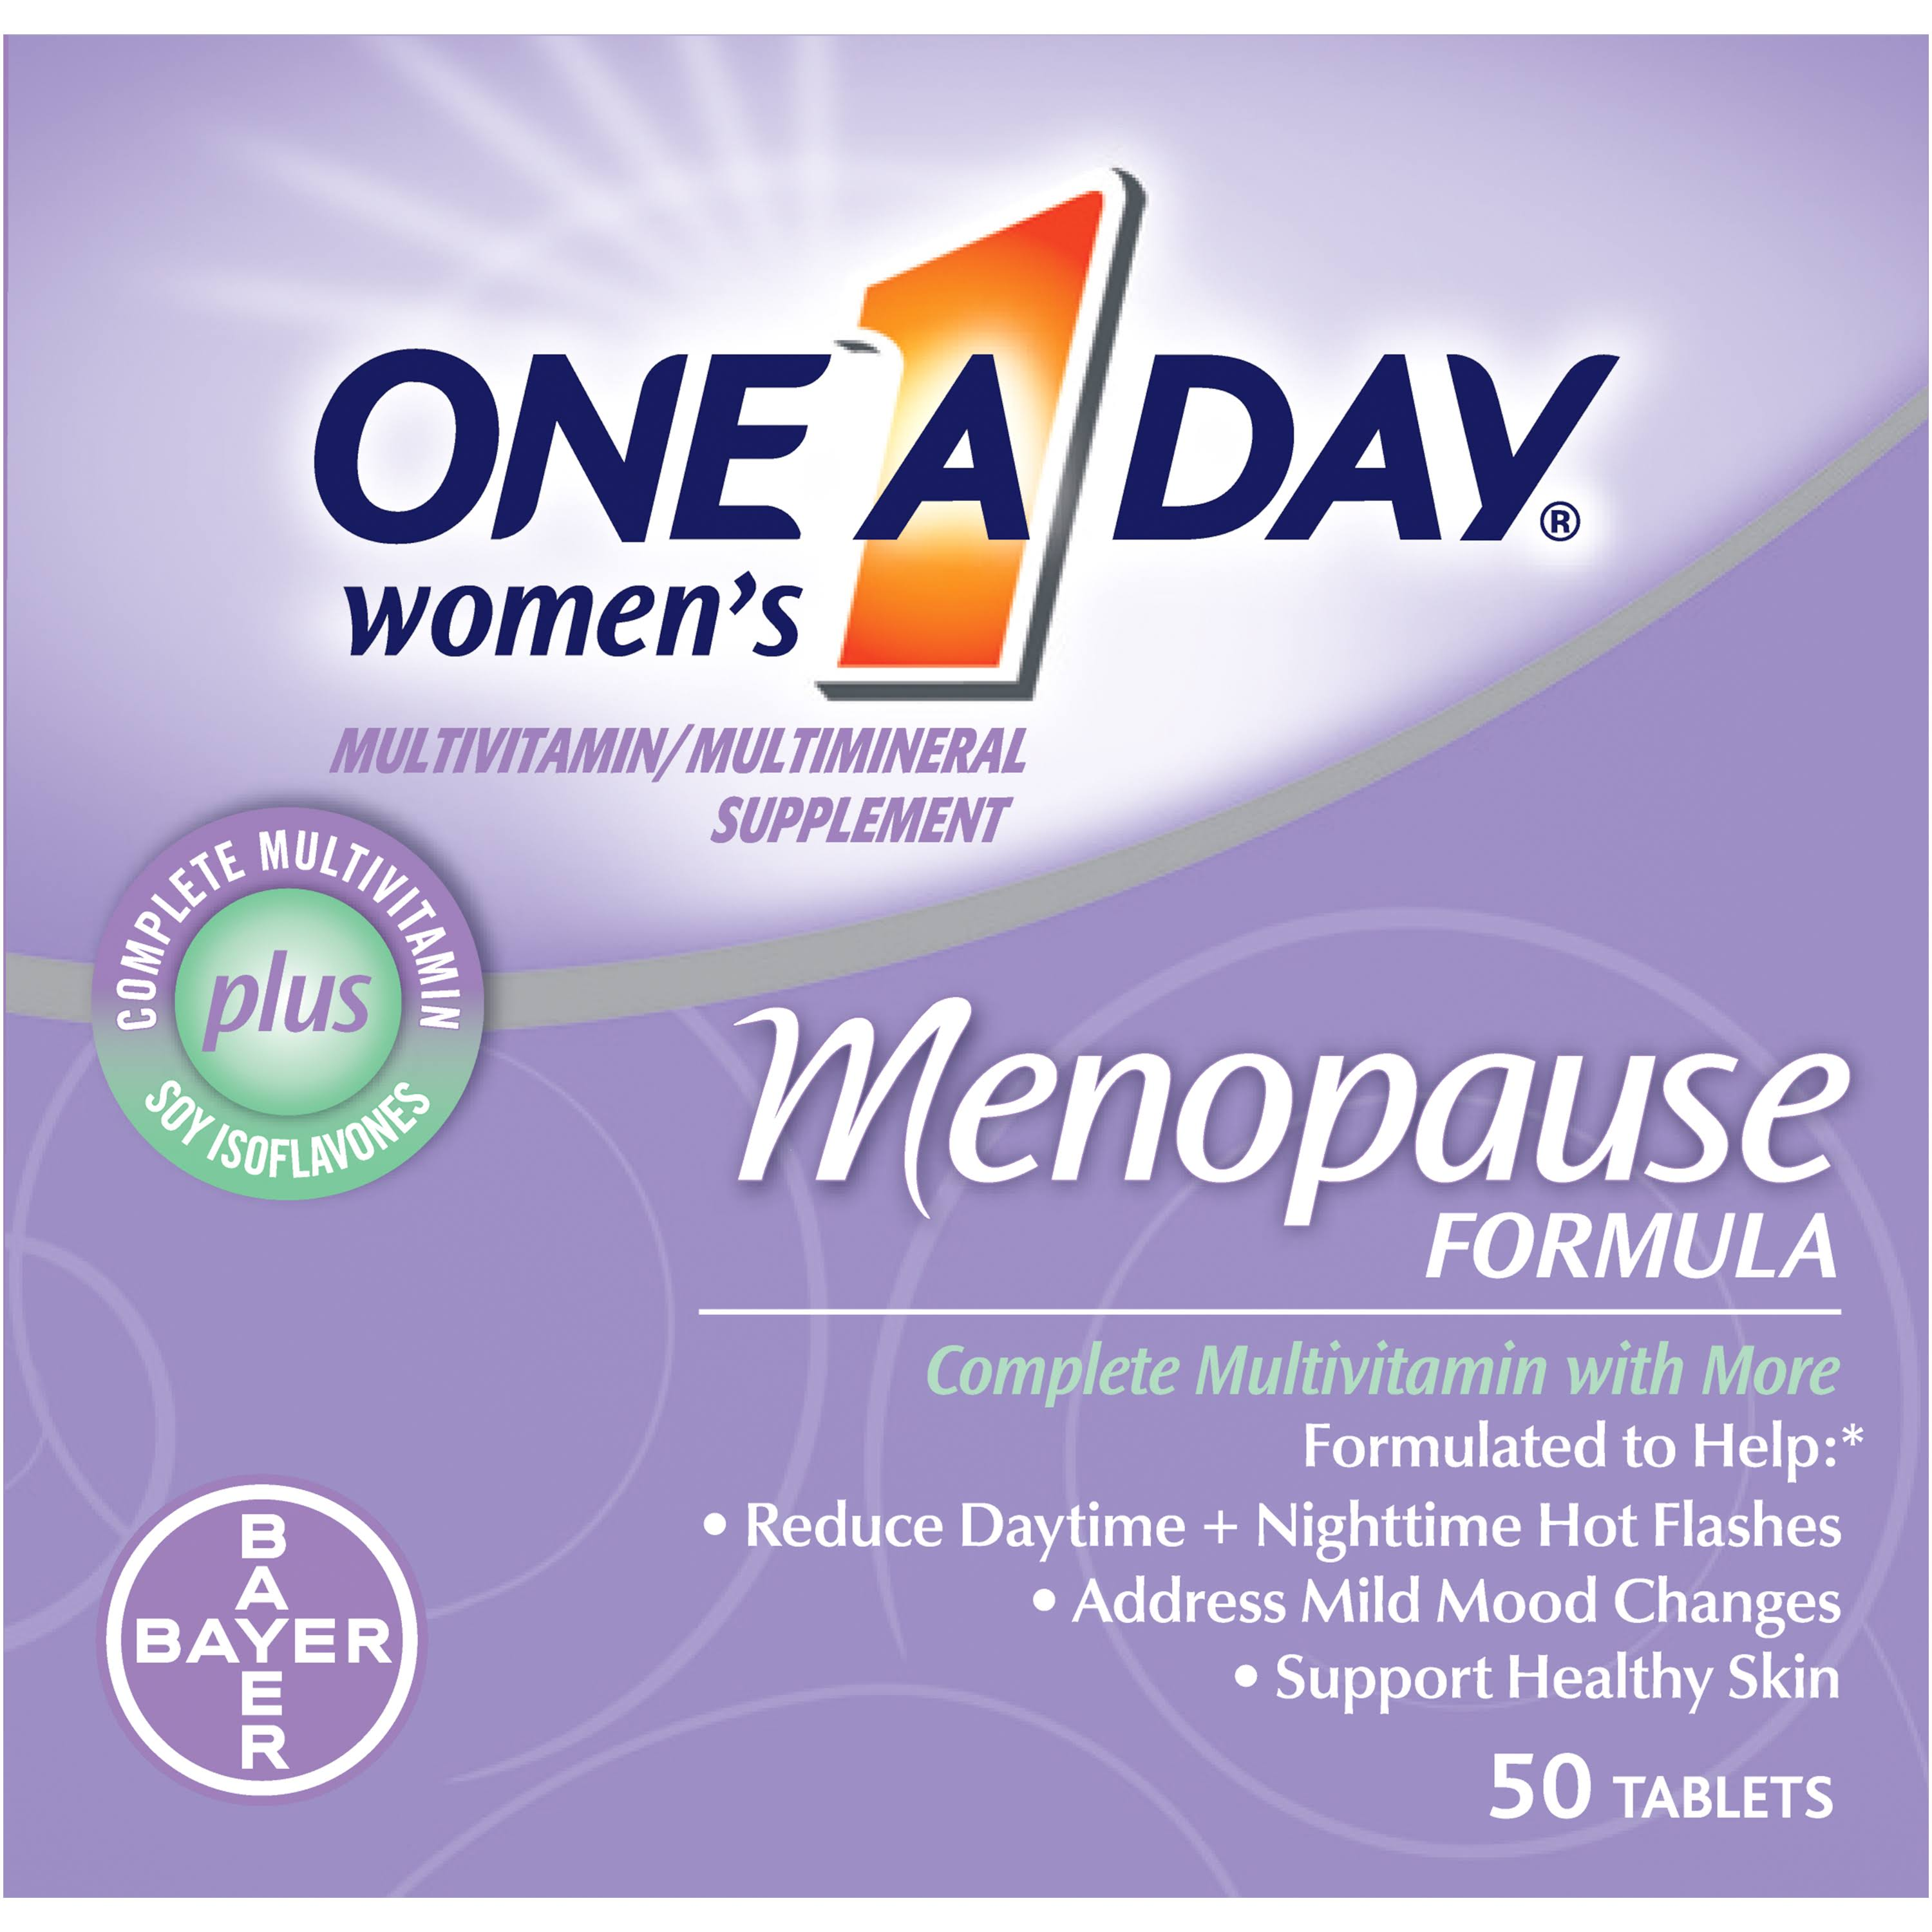 Bayer One A Day Women's Menopause Formula Tablets - 50 Tablets